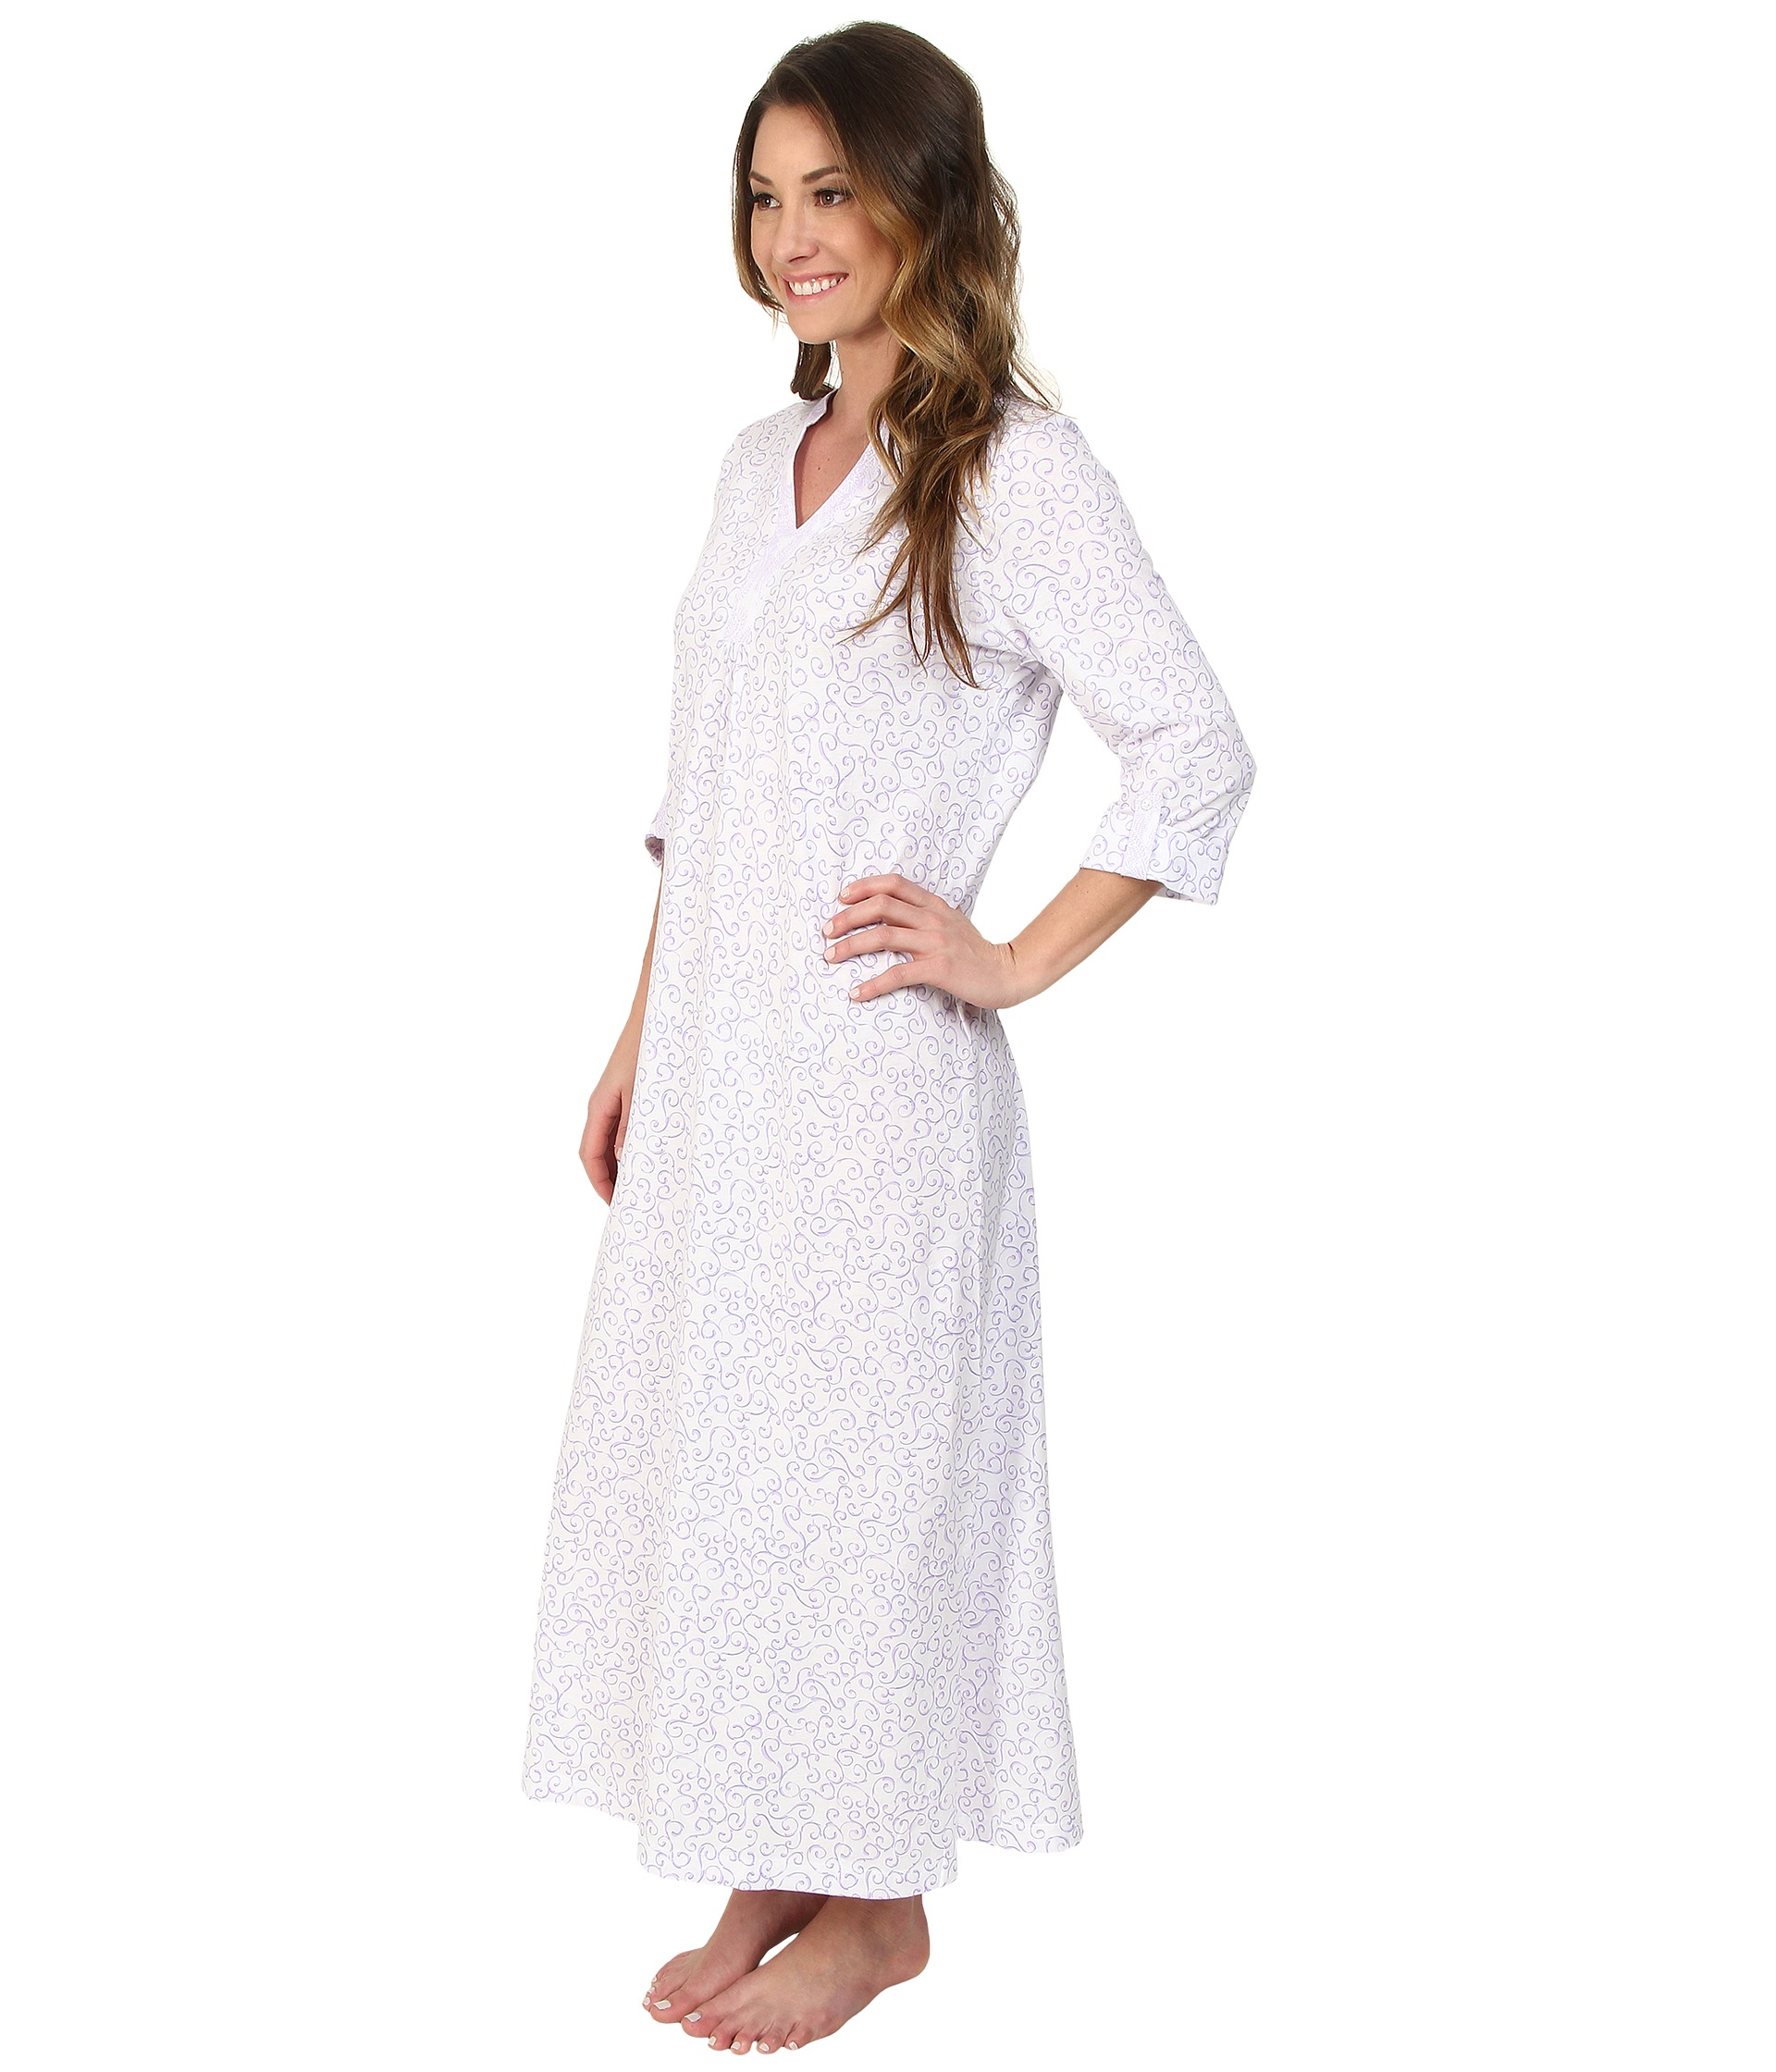 White Cotton Jersey Nightgowns La Cera Women S Embroidered